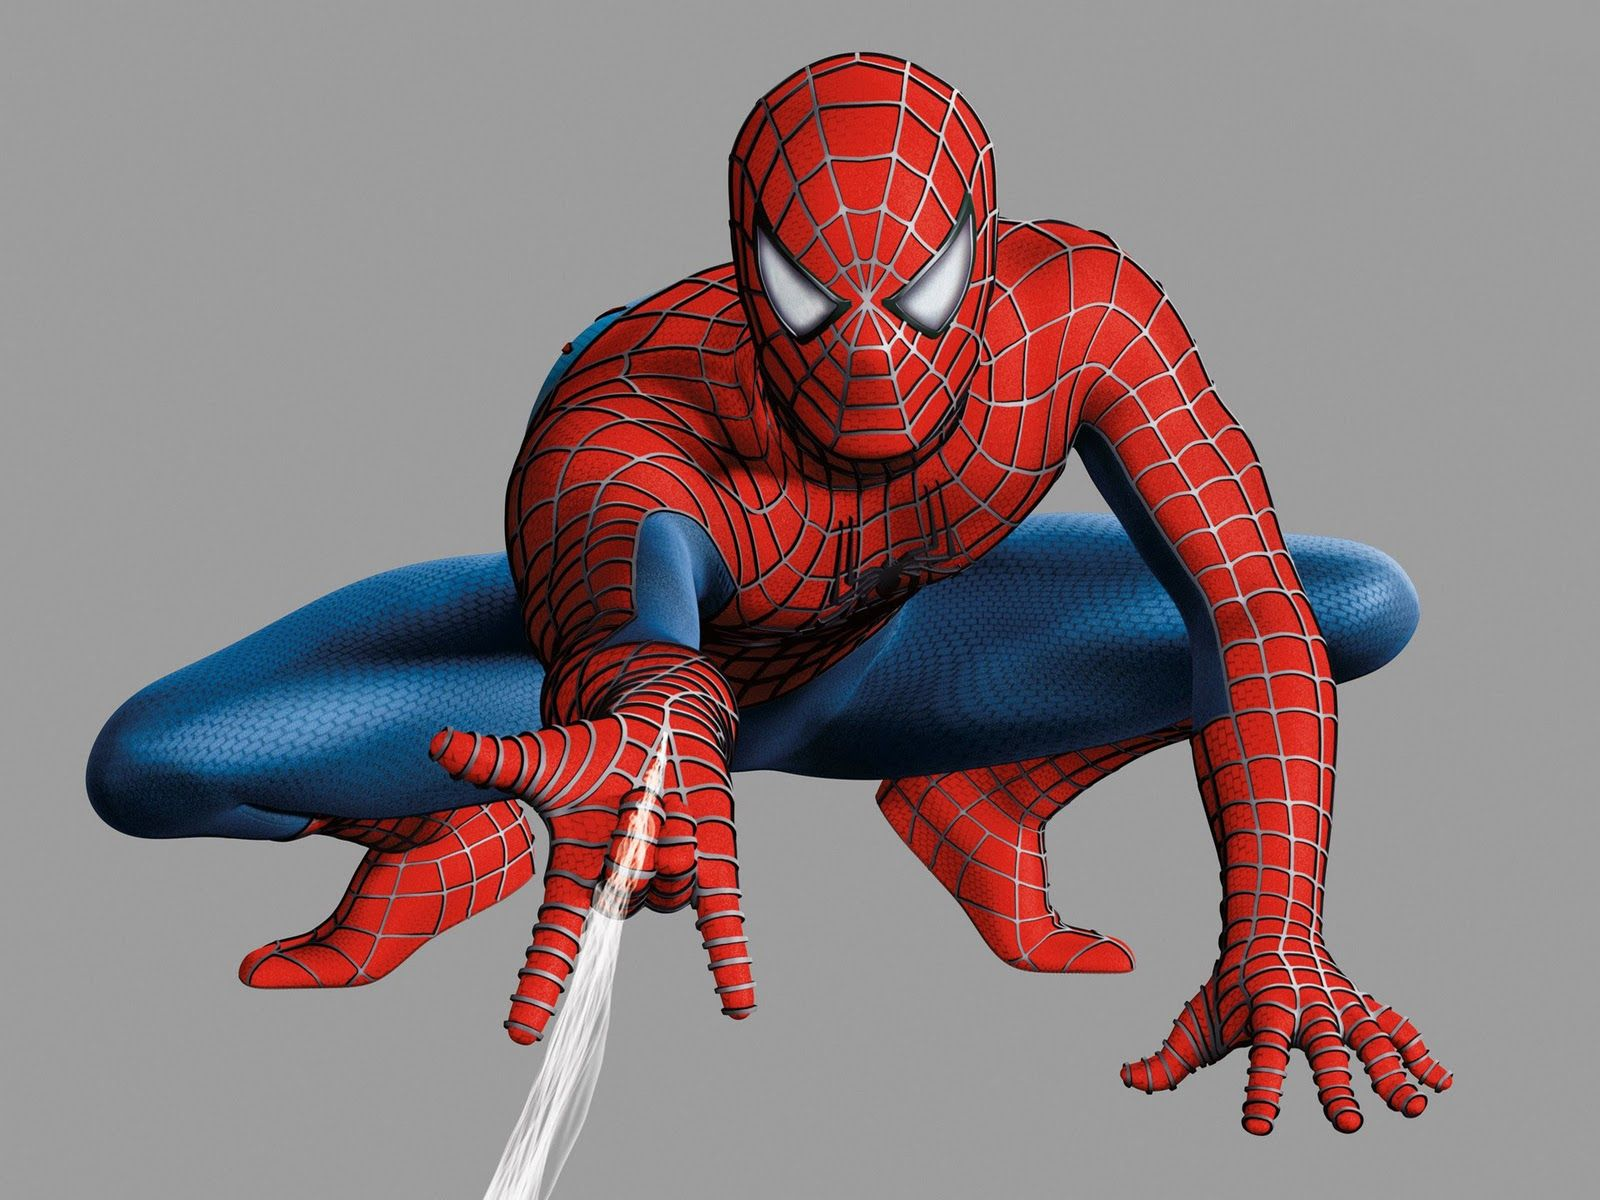 Images of spiderman standing up shooting webb clipart vector library stock Web-Shooting Spiderman action figure | Web-Shooting Spiderman ... vector library stock